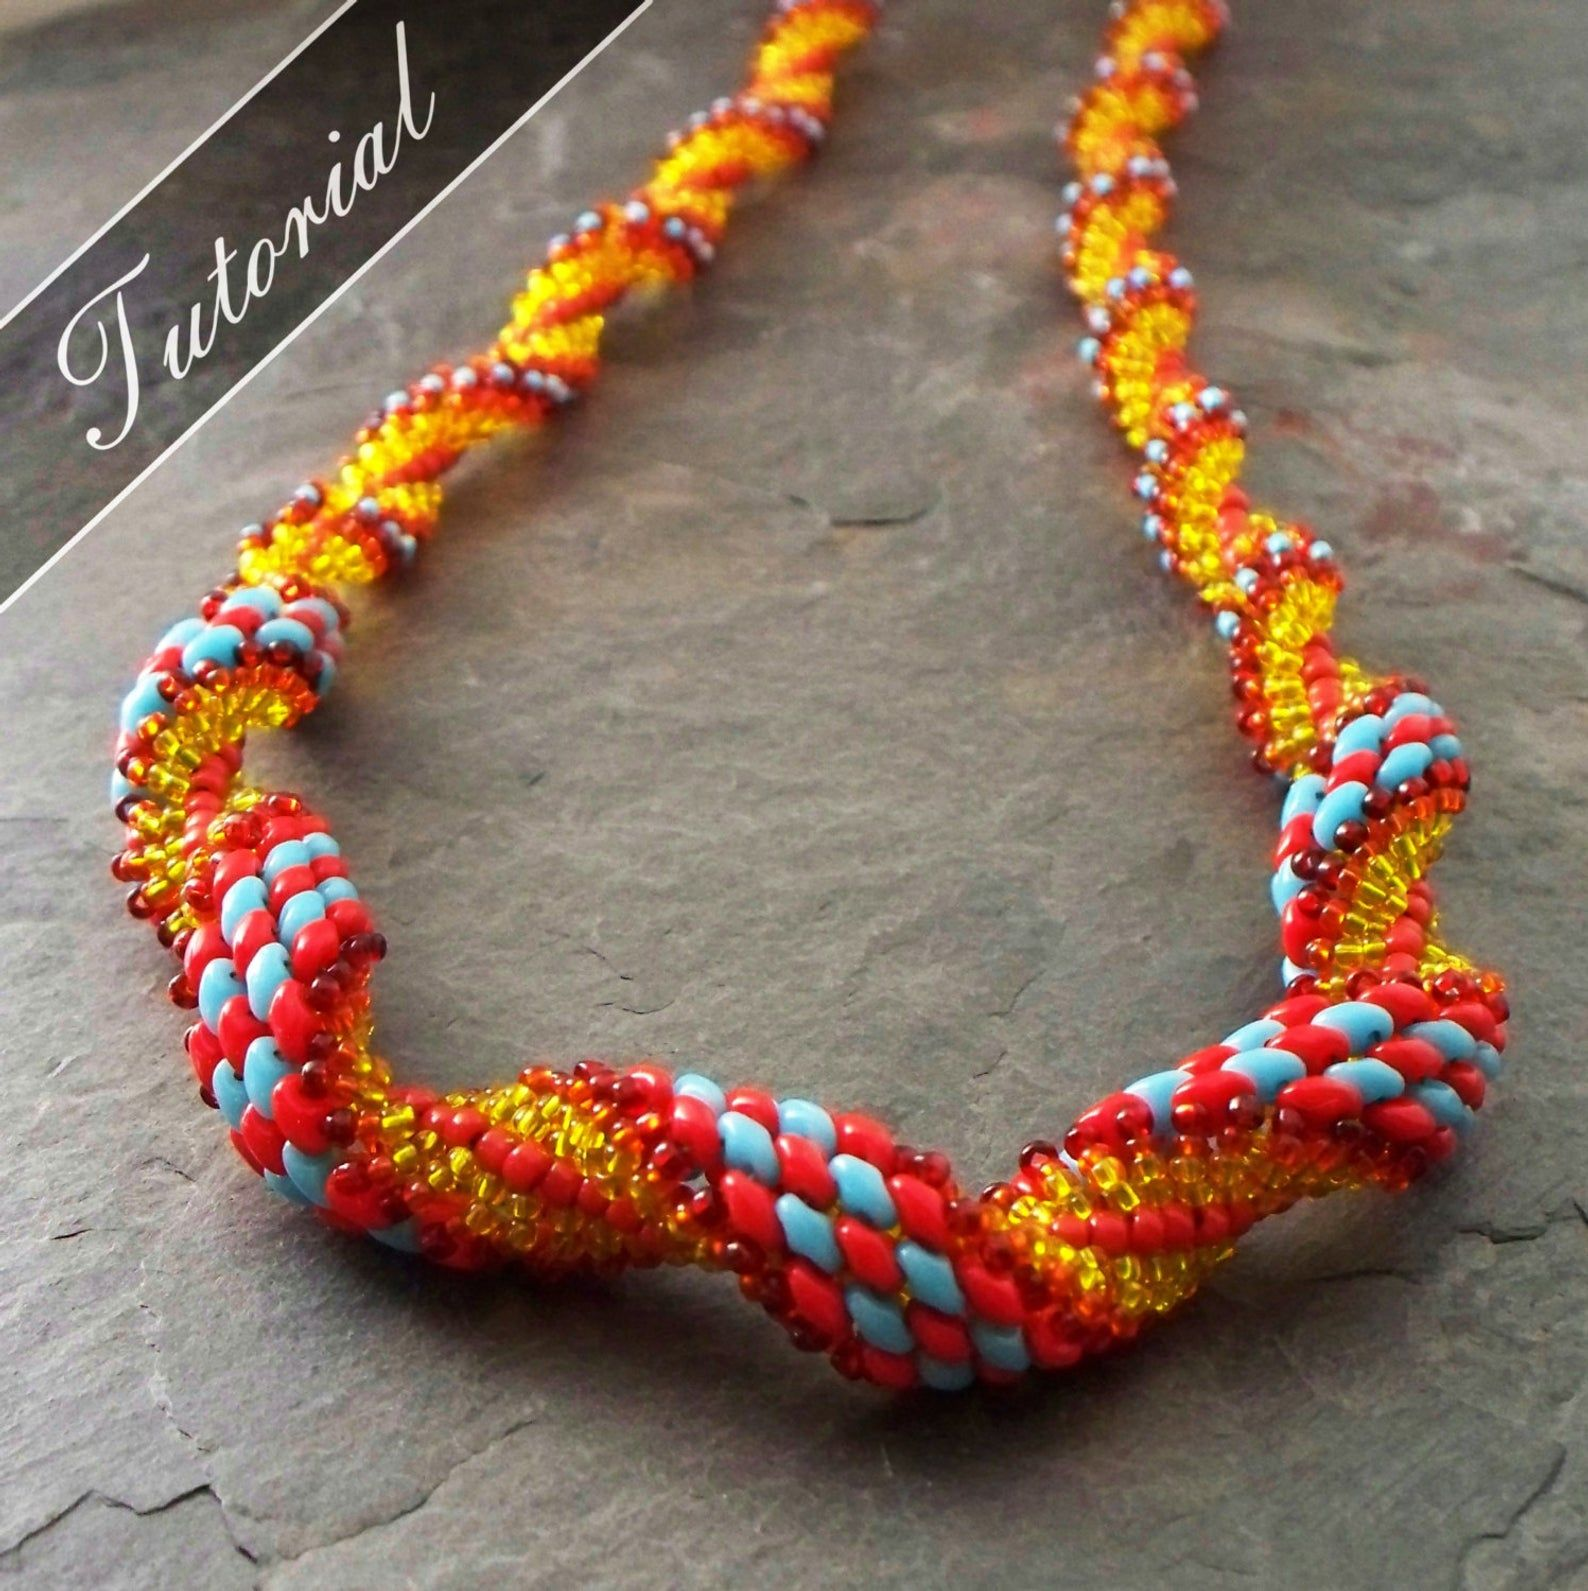 Super Duo Spiral Stitch Necklace Pattern  Bead Weaving Tutorial  Step By Step With Detailed